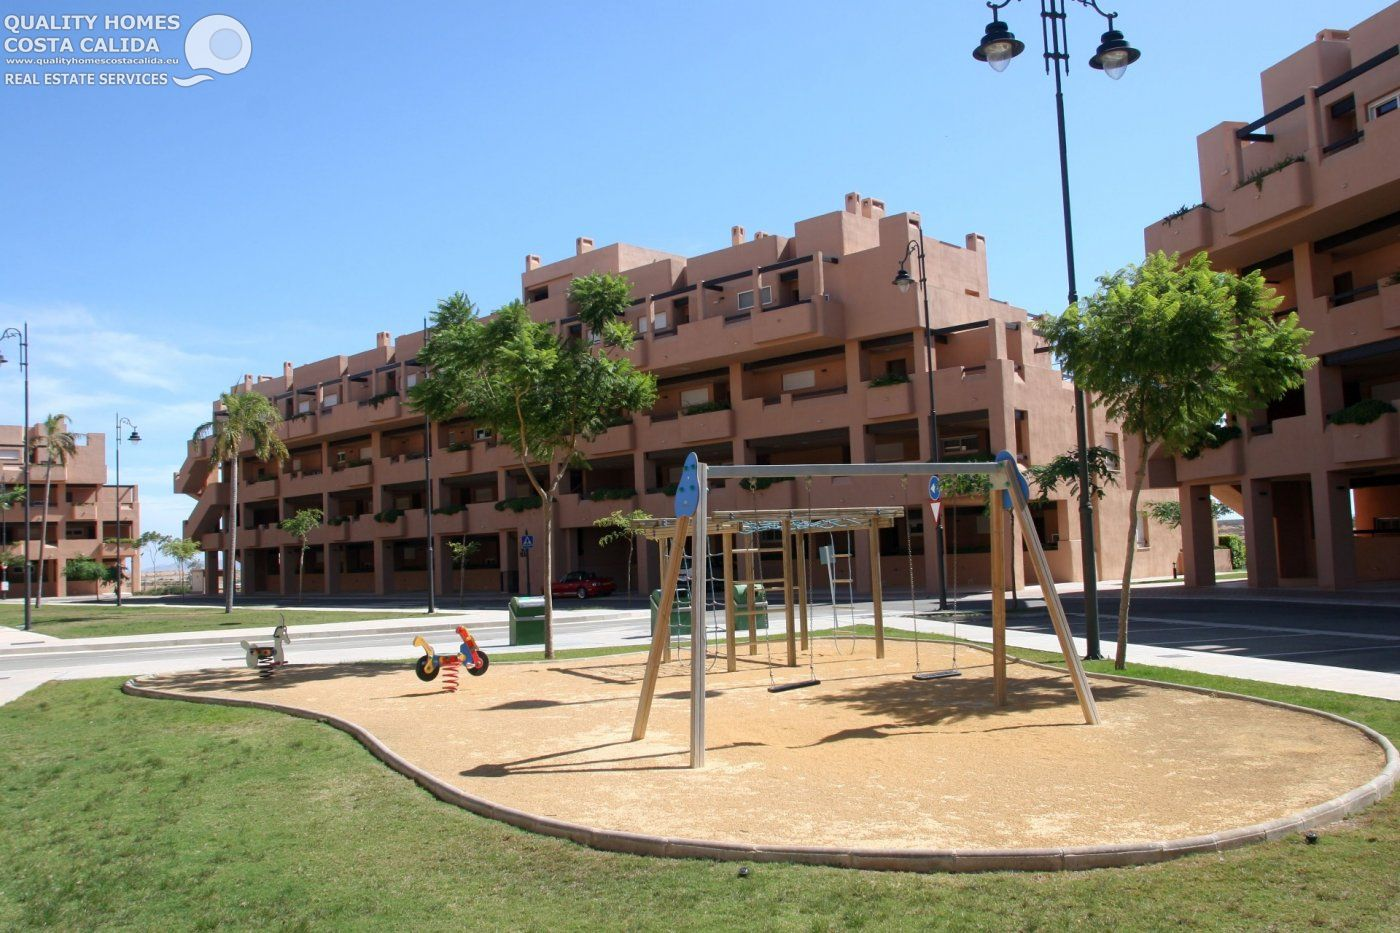 Gallery Image 30 of NEW BANK RELEASE - New 2 Bedroom Apartments at La Isla del Condado For Sale from €53,100